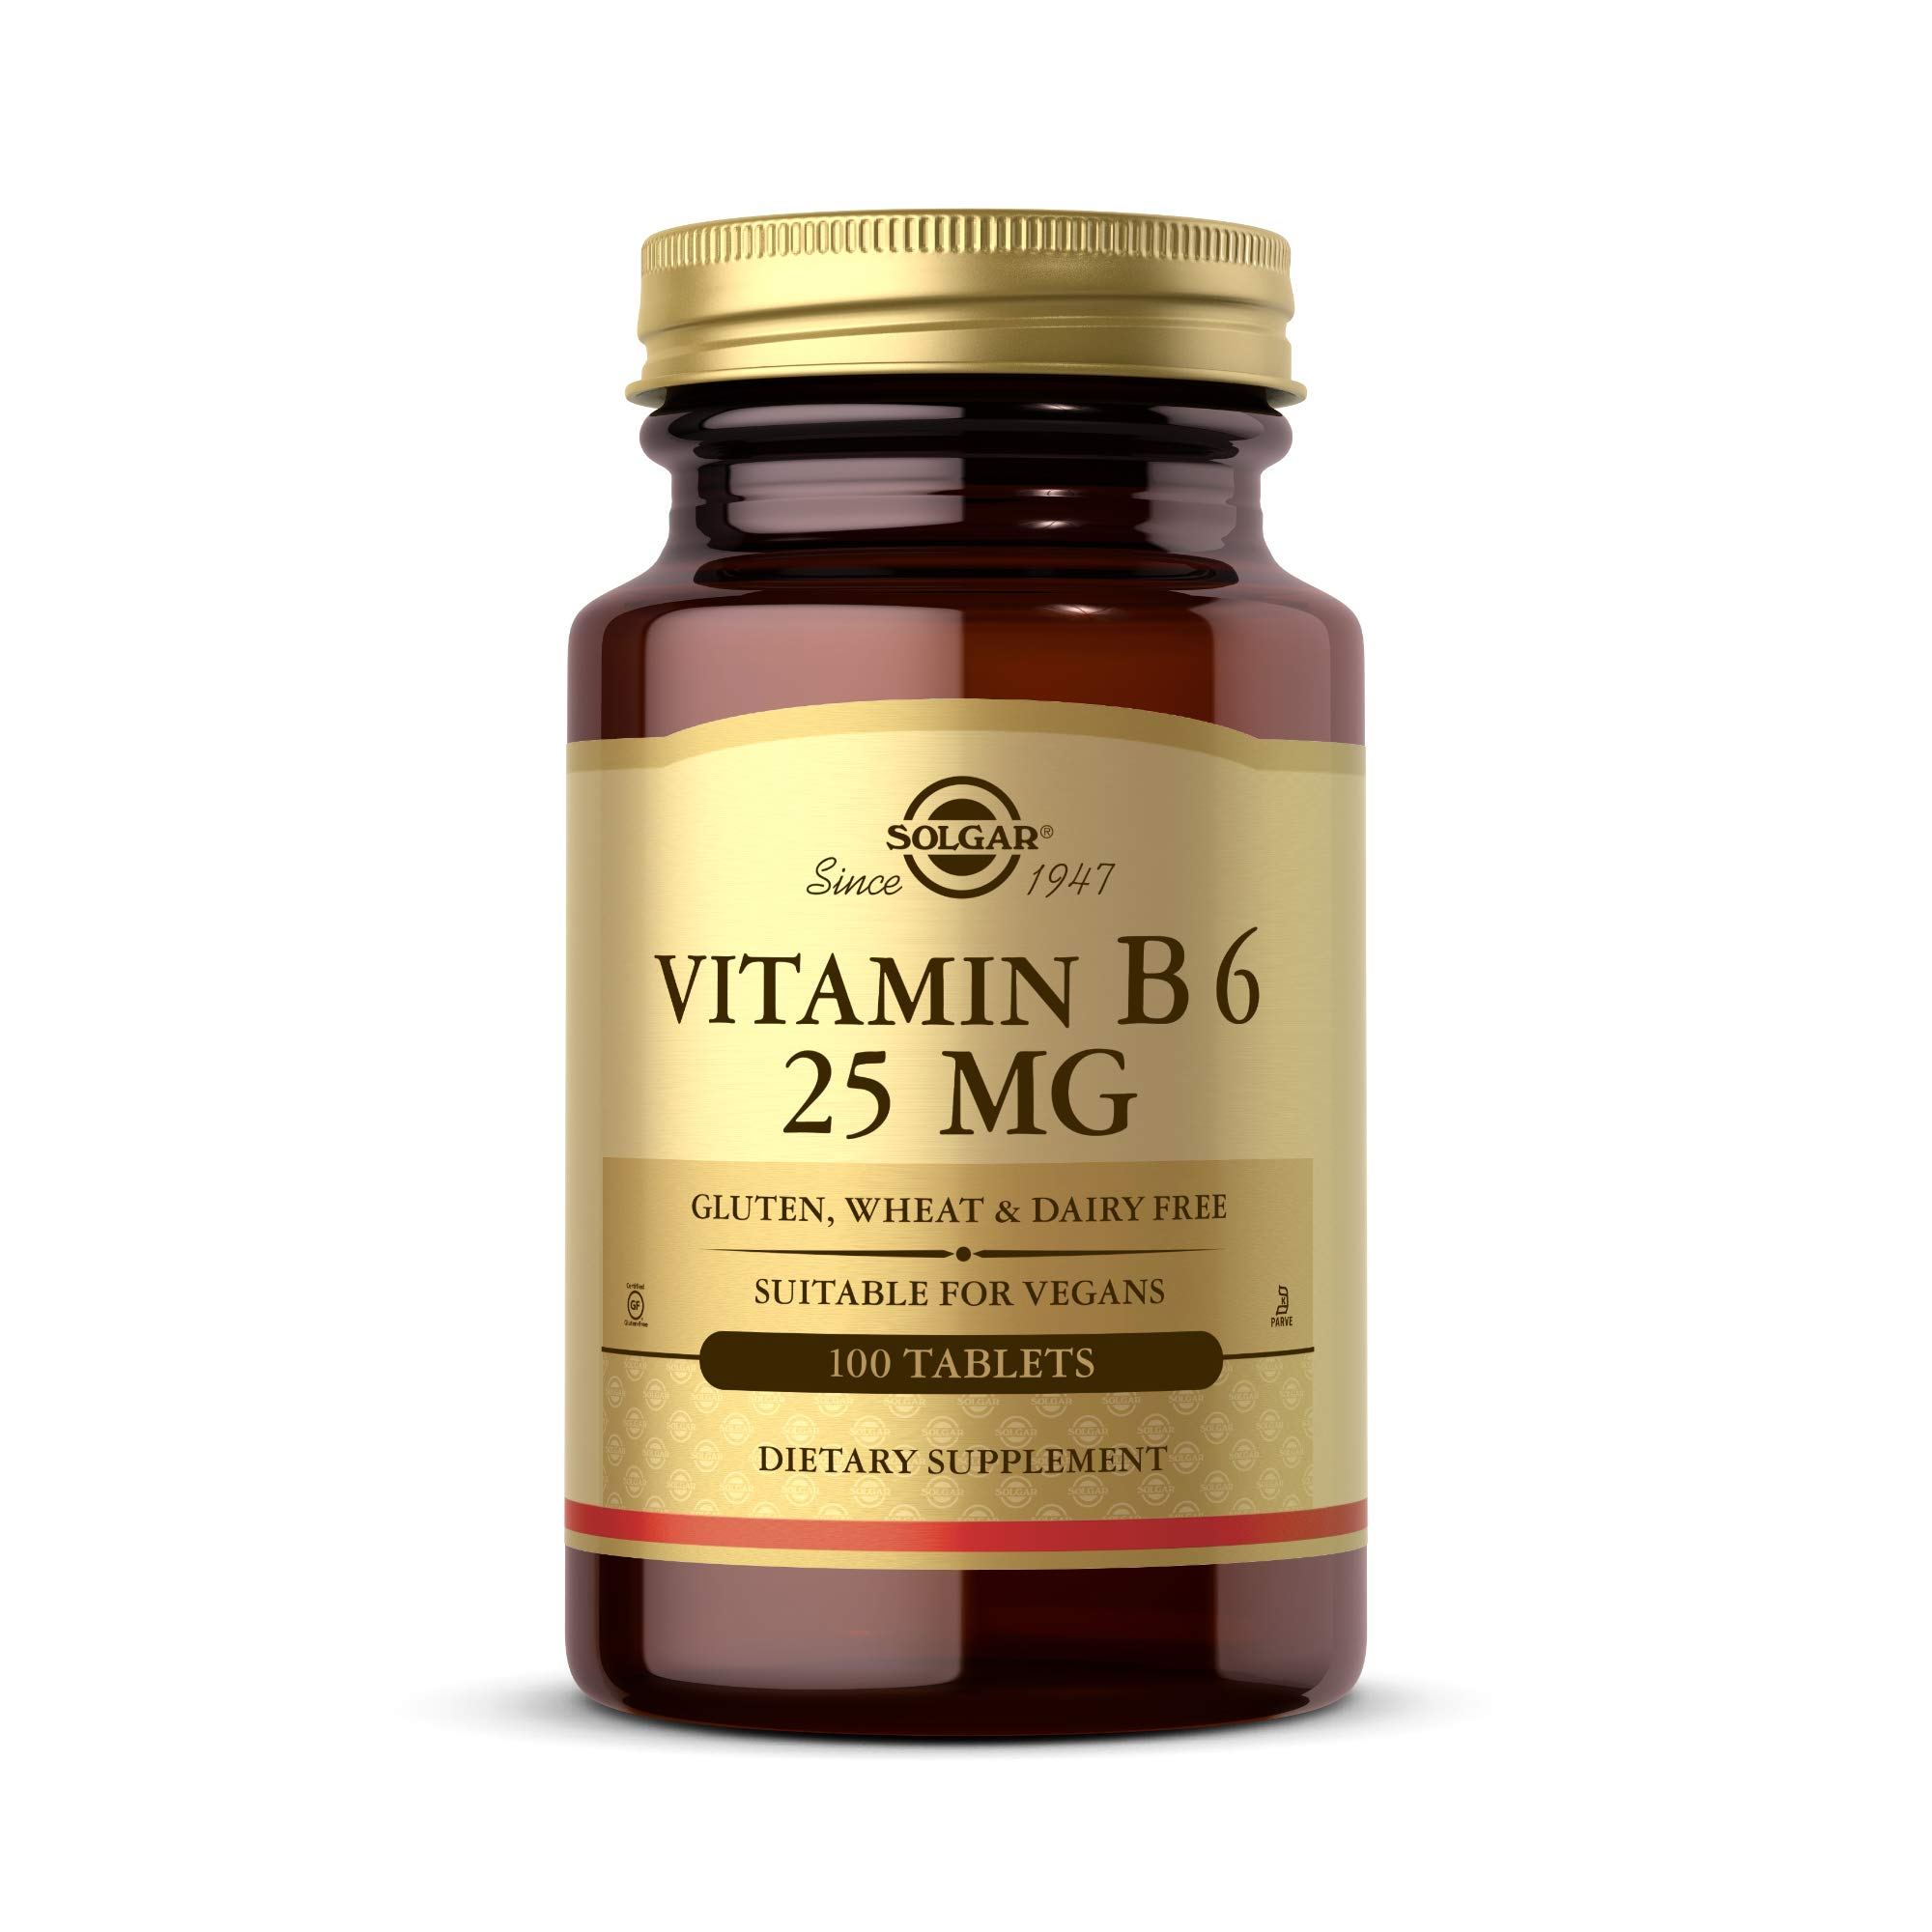 Solgar Vitamin B6 25 mg, 100 Tablets - Supports Energy Metabolism, Heart Health & Healthy Nervous System - B Complex Supplement - Vegan, Gluten Free, Dairy Free, Kosher - 100 Servings